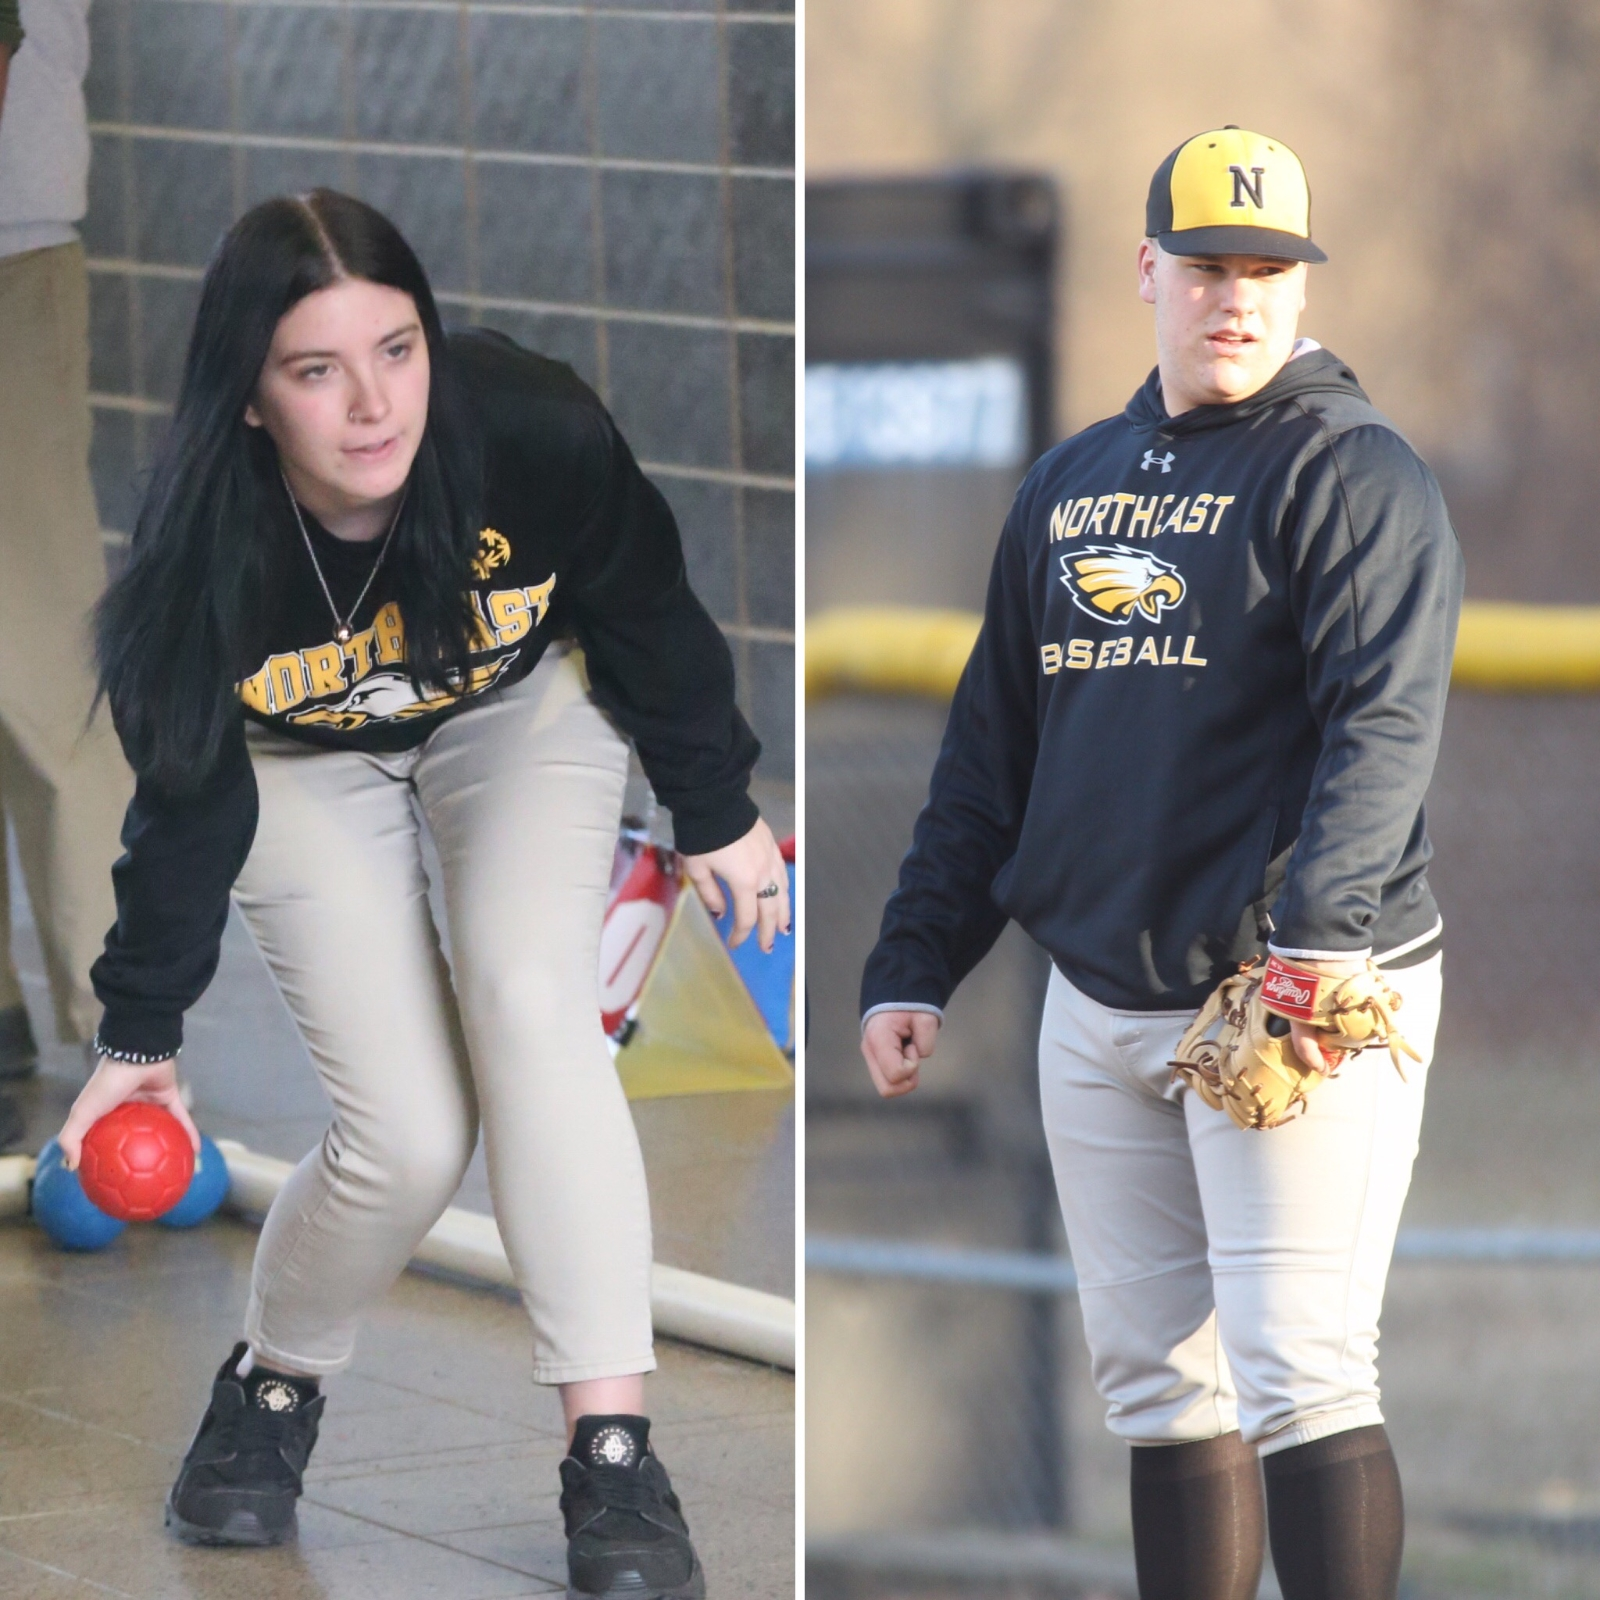 NHS Athletics March Athletes of the Month: Candra Lynne and Colby Sanders